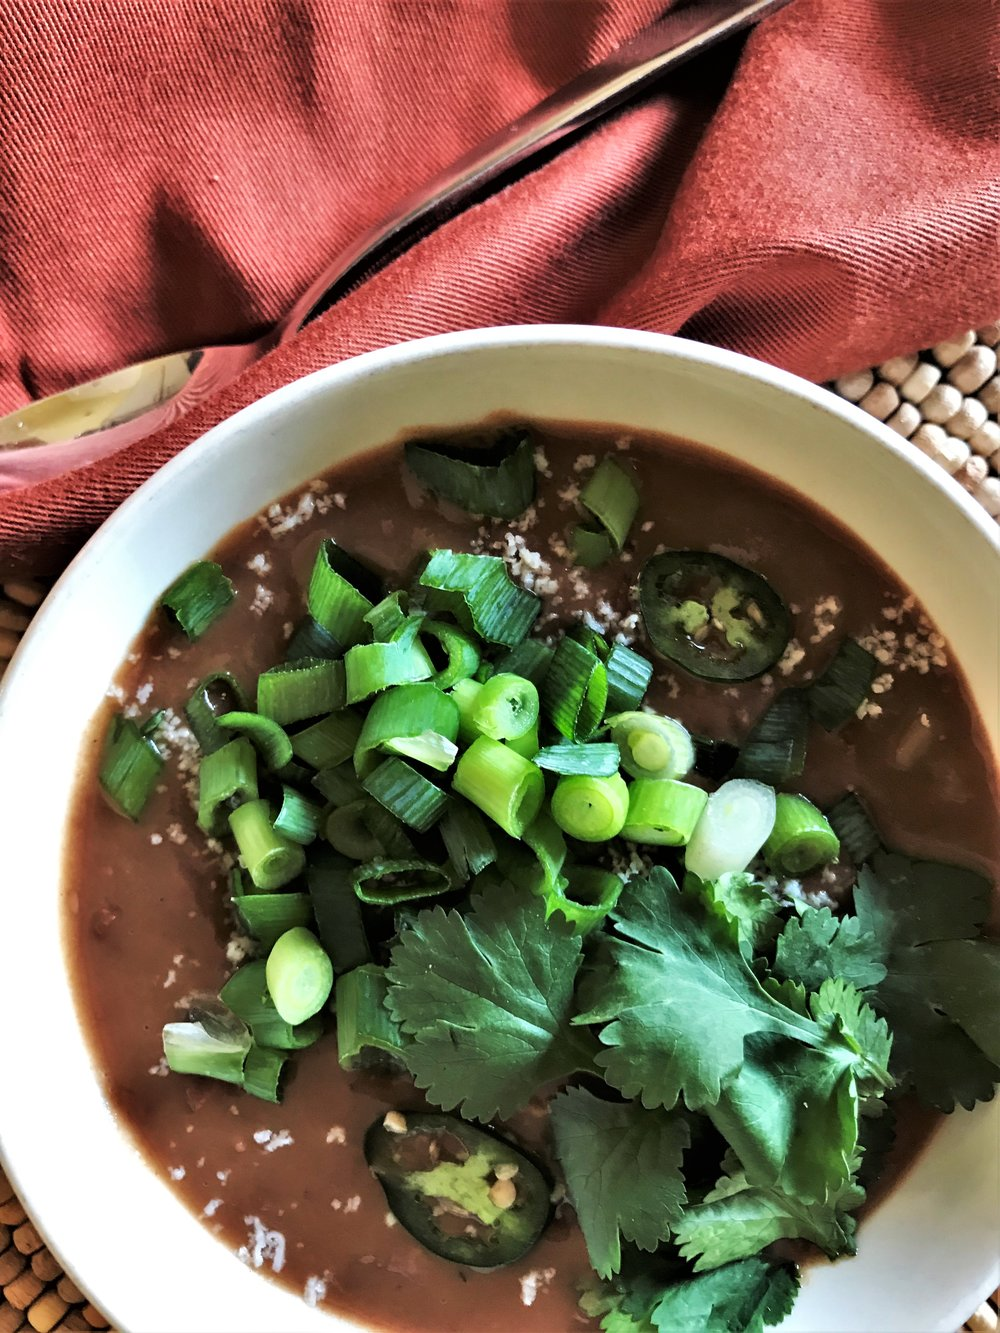 Mexican Bean Broth Soup made in the Adventure Kitchen.